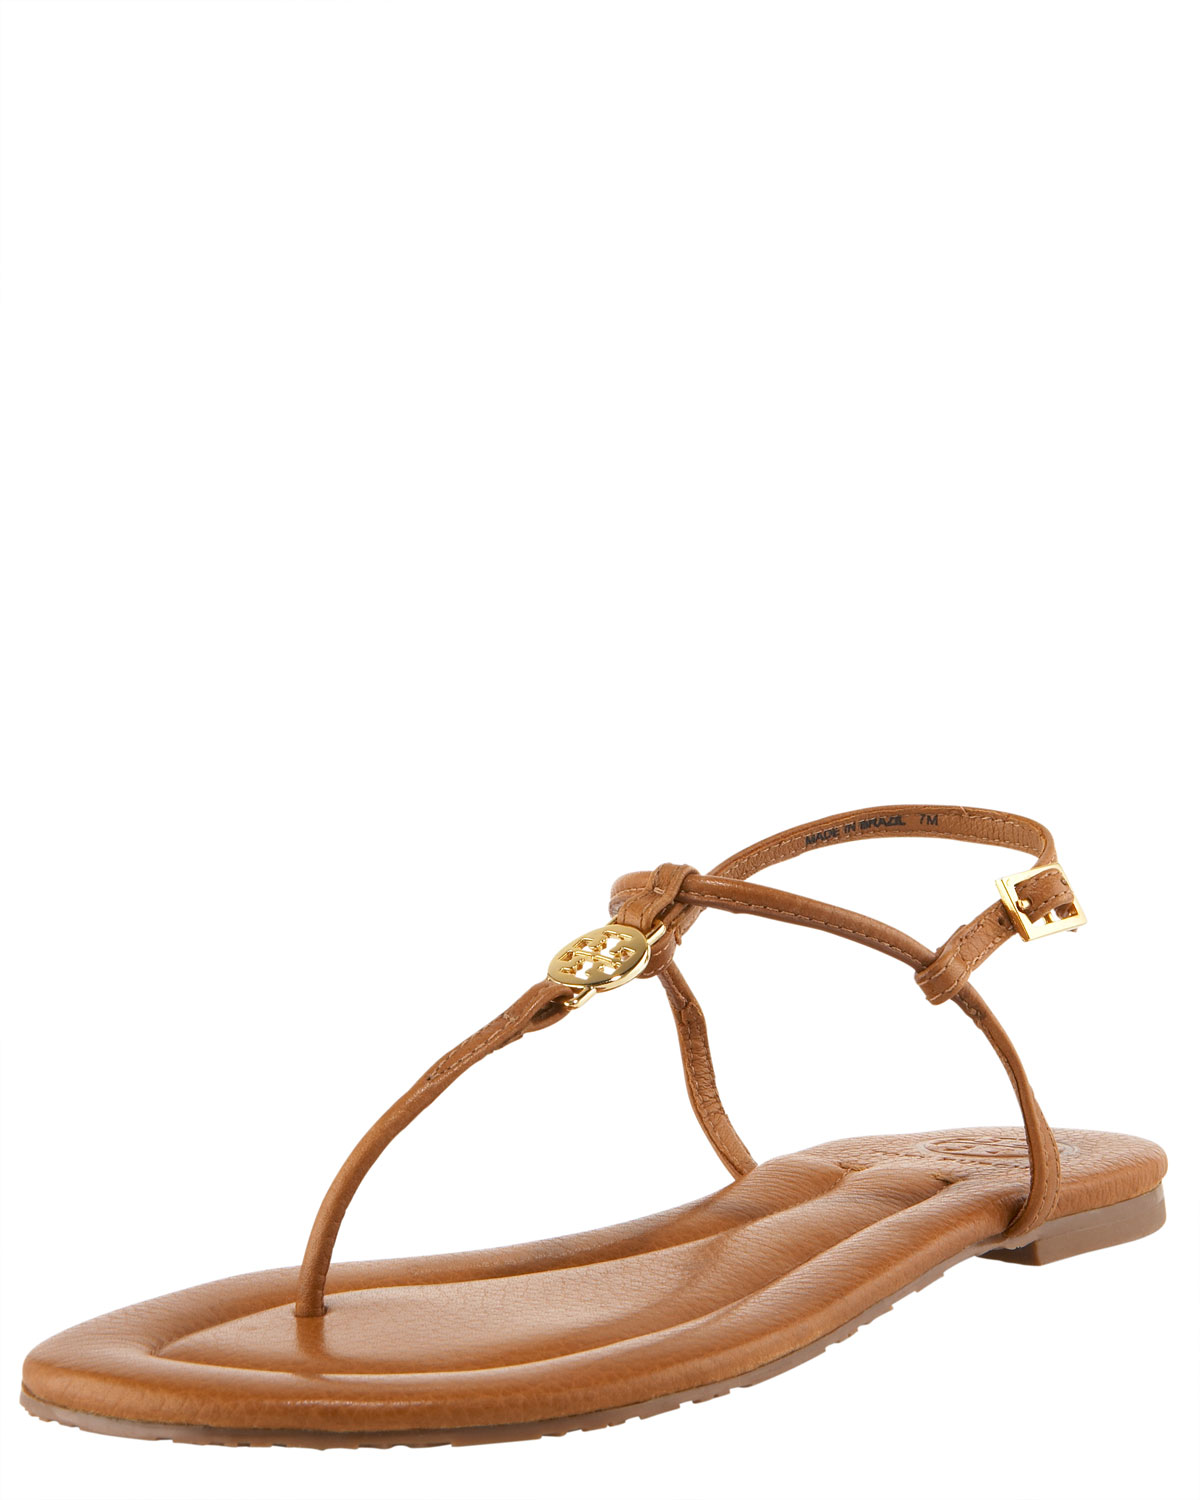 8bcb6bcbc80fb8 Lyst - Tory Burch Emmy Logo Thong Sandal in Brown